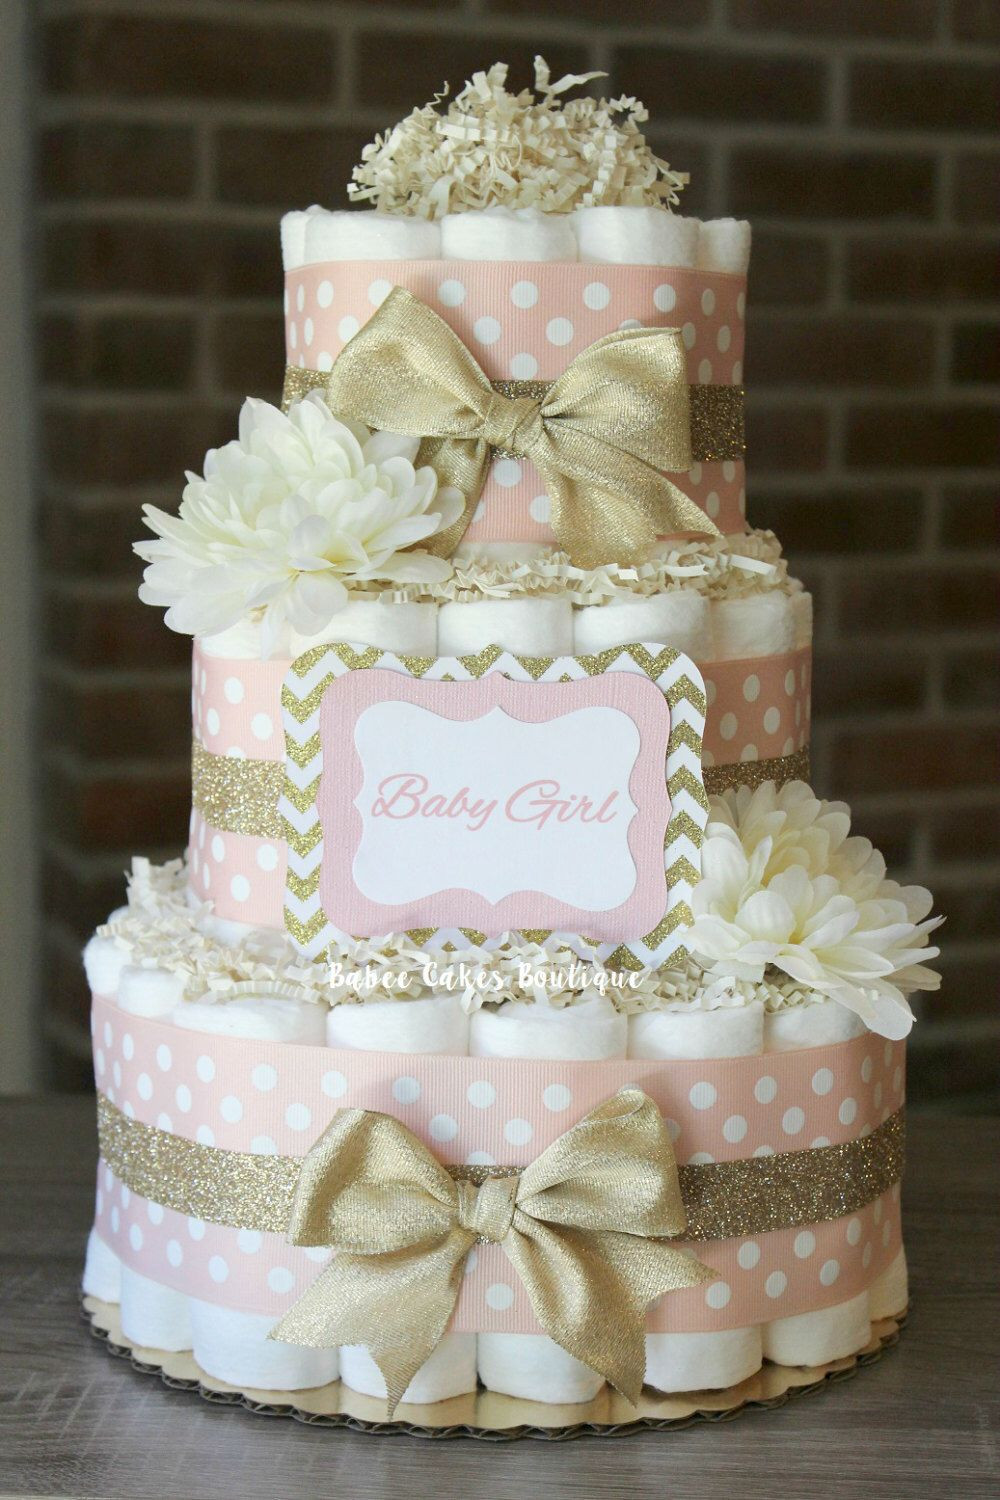 Baby Shower Diaper Cakes Fresh 3 Tier Blush Pink and Champagne Gold Diaper Cake Baby Of Gorgeous 41 Ideas Baby Shower Diaper Cakes